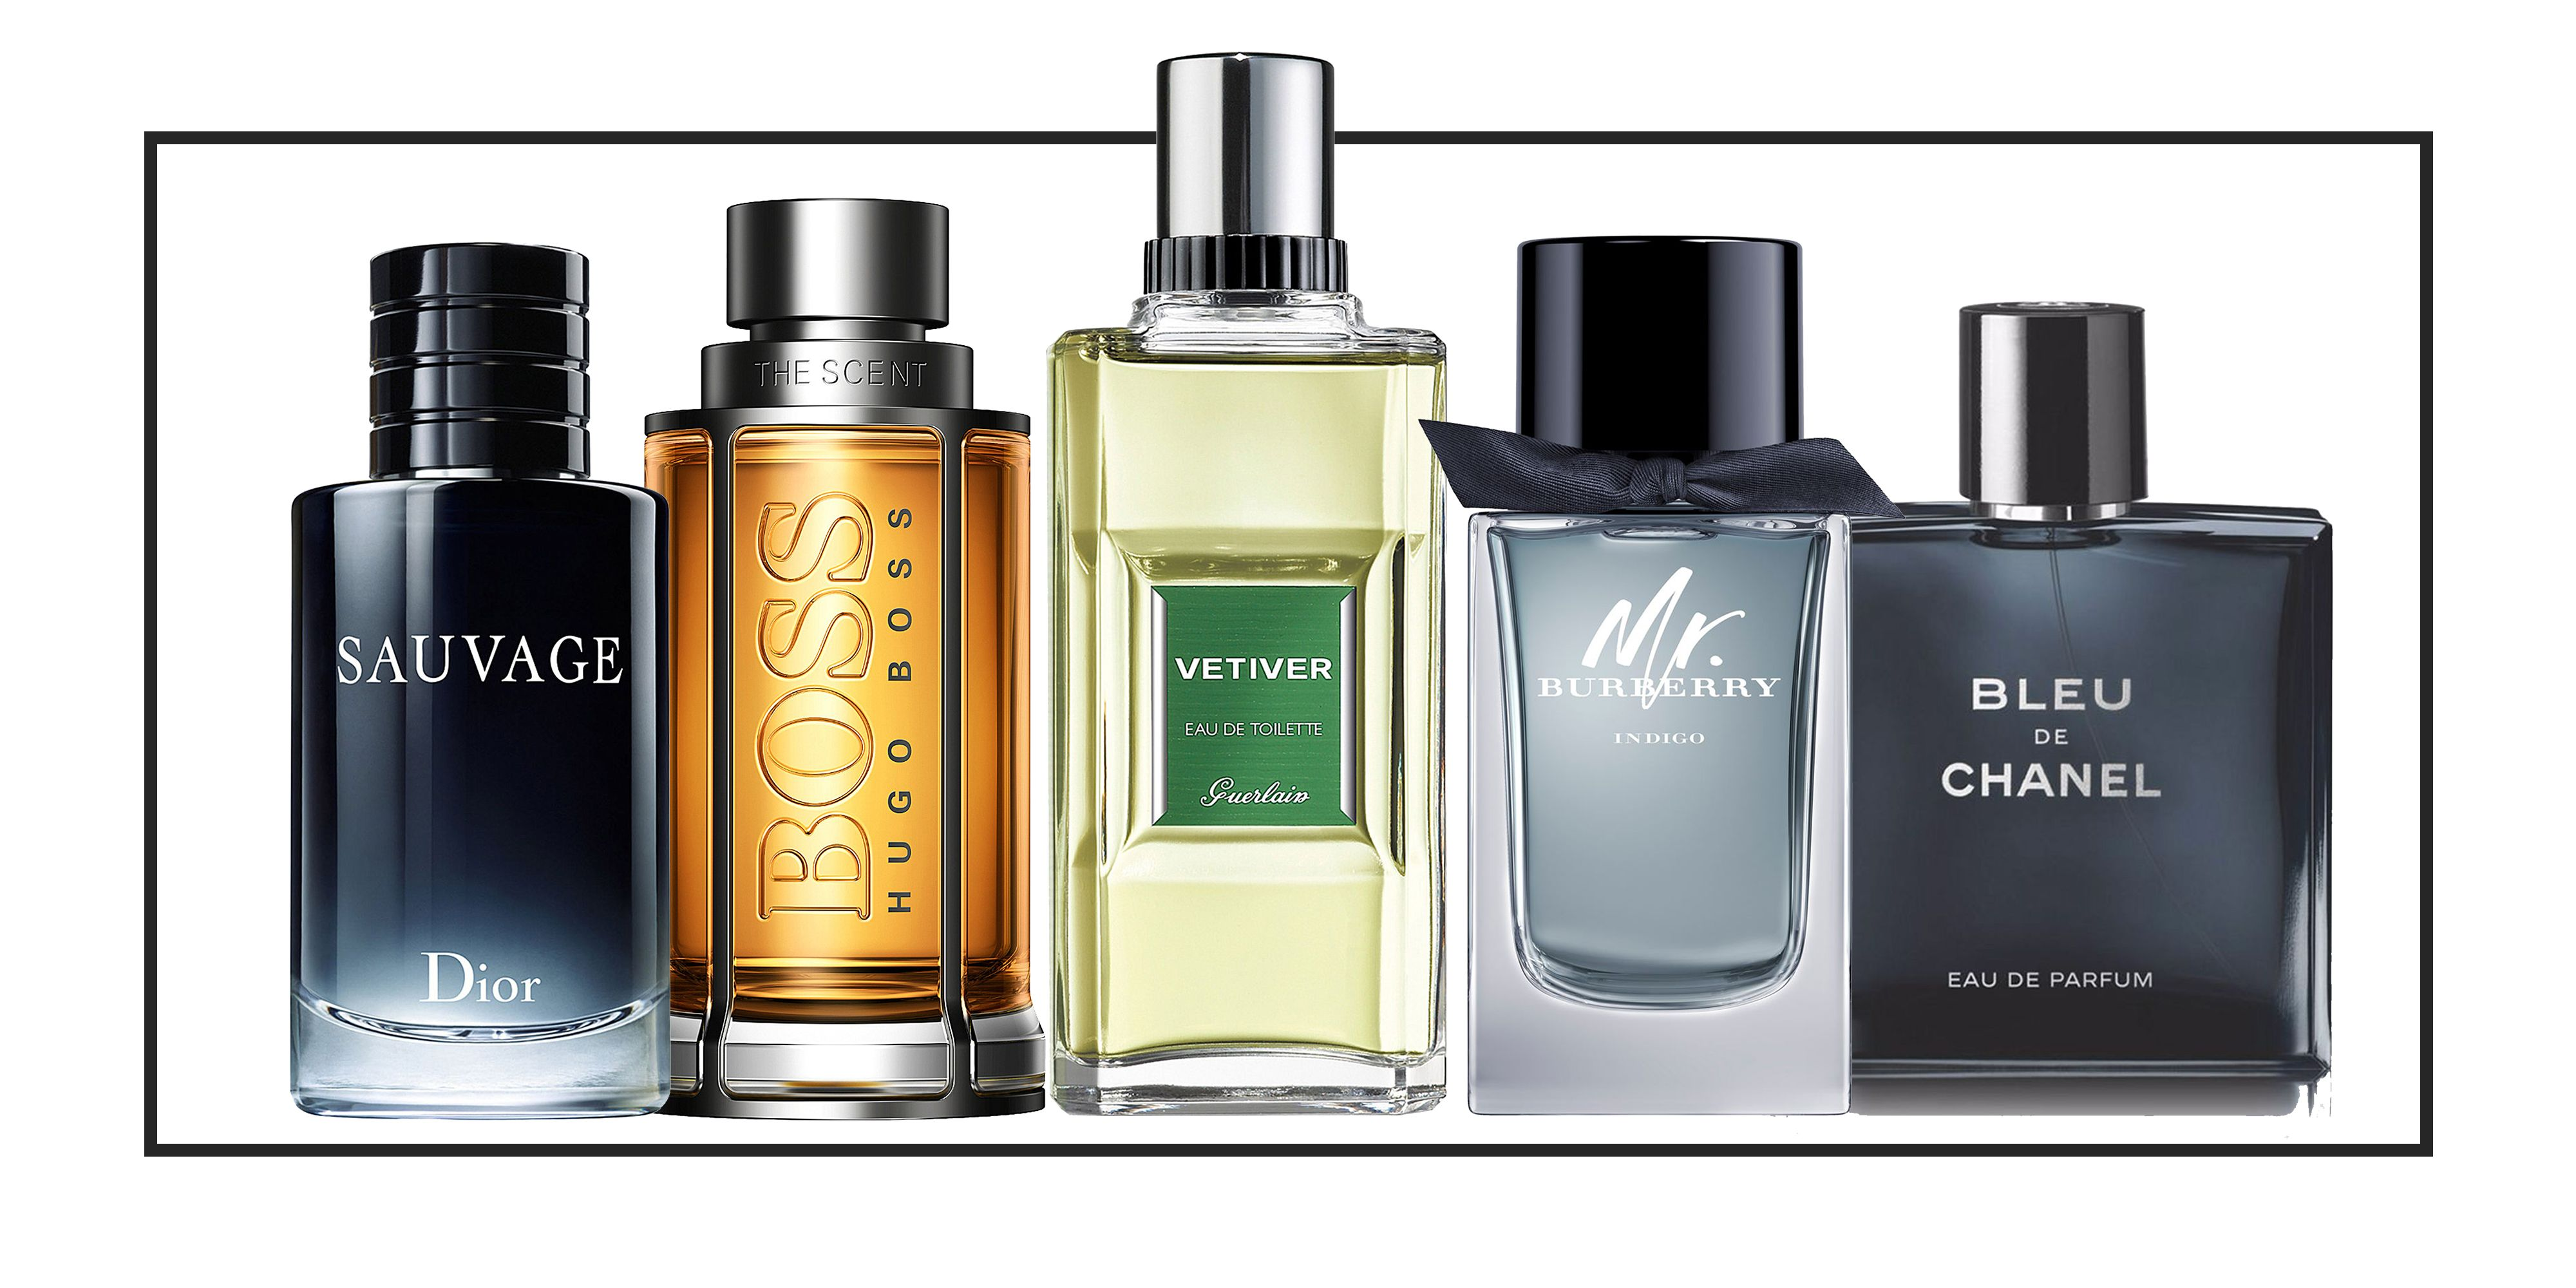 The best male fragrances and aftershaves for men to give as gifts 044ac9b430